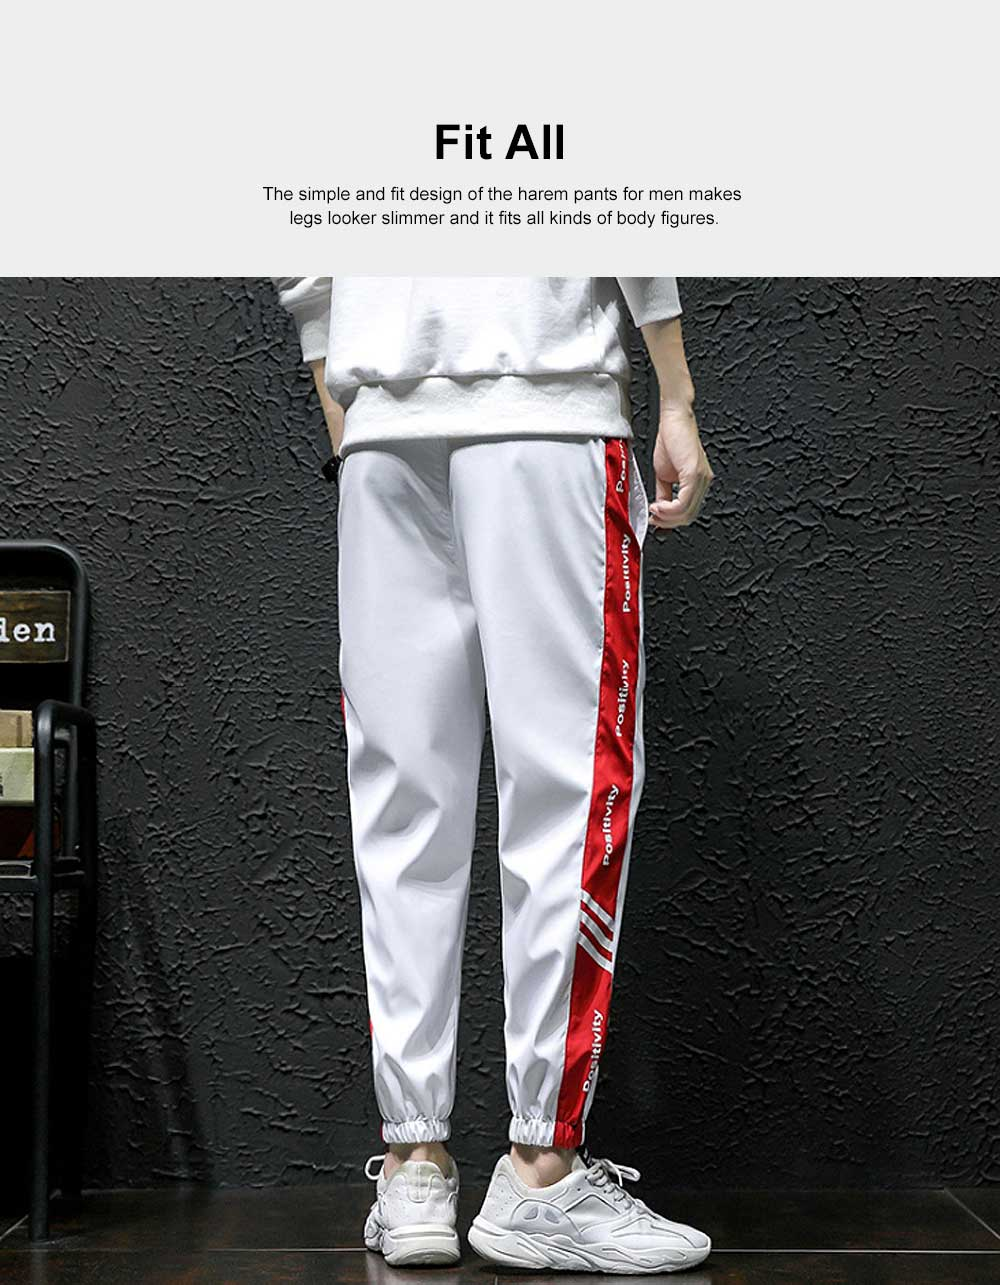 2019 Casual Harem Pants for Male Spring Summer, Mid-rised Slim-fit Pants for Man, Sports Slacks Men's Trousers 1